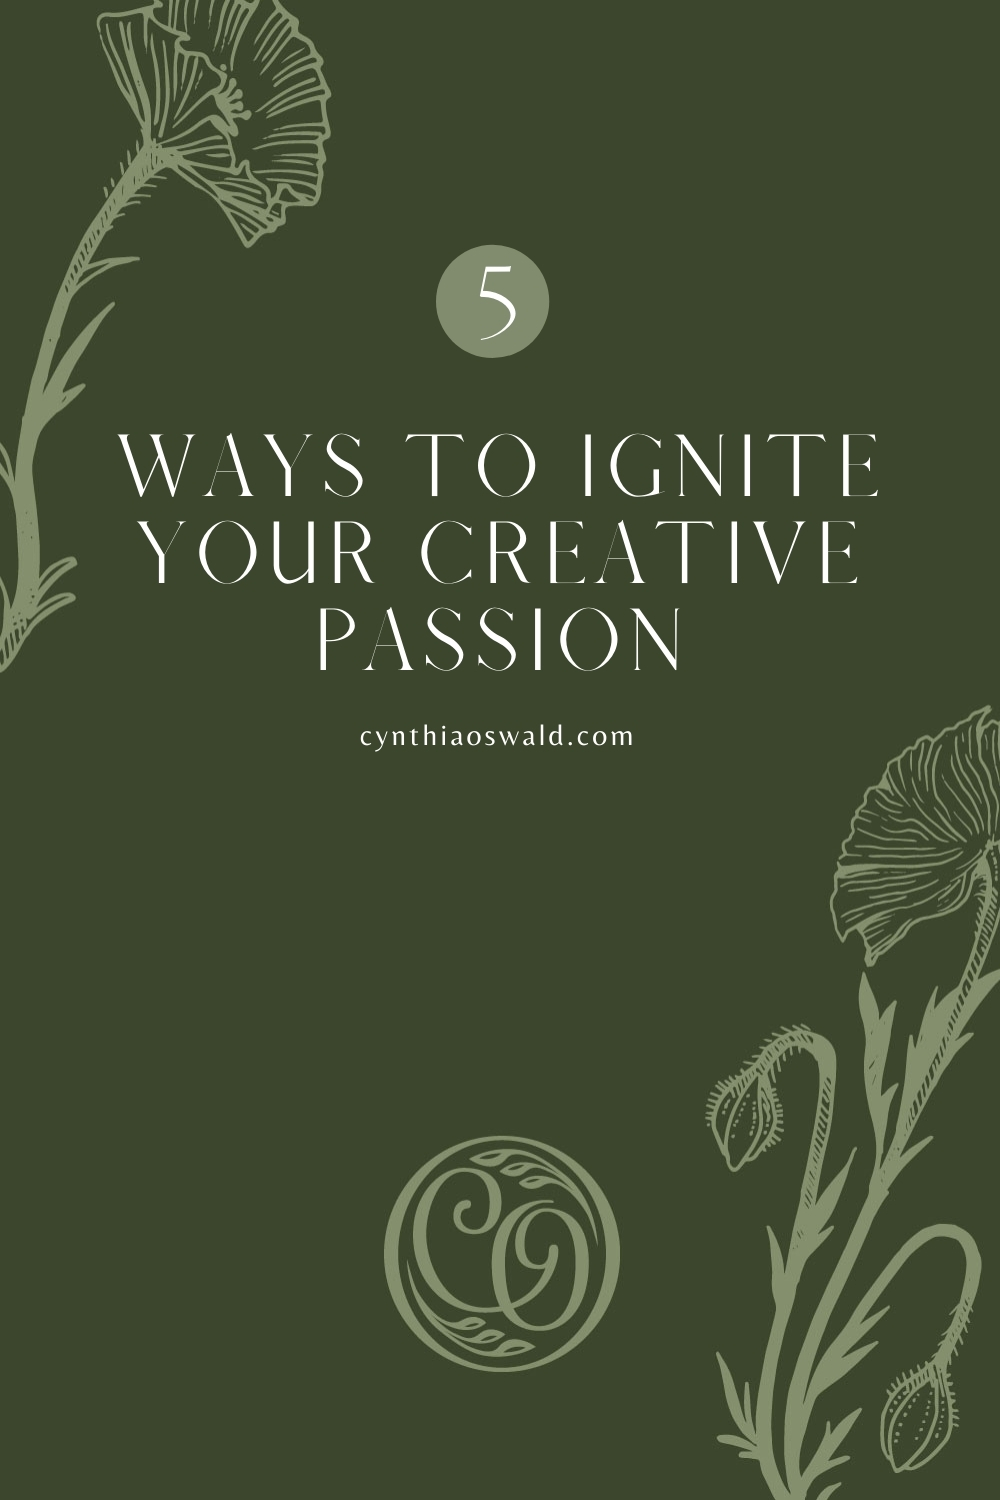 5 Ways to Ignite Your Creative Passion